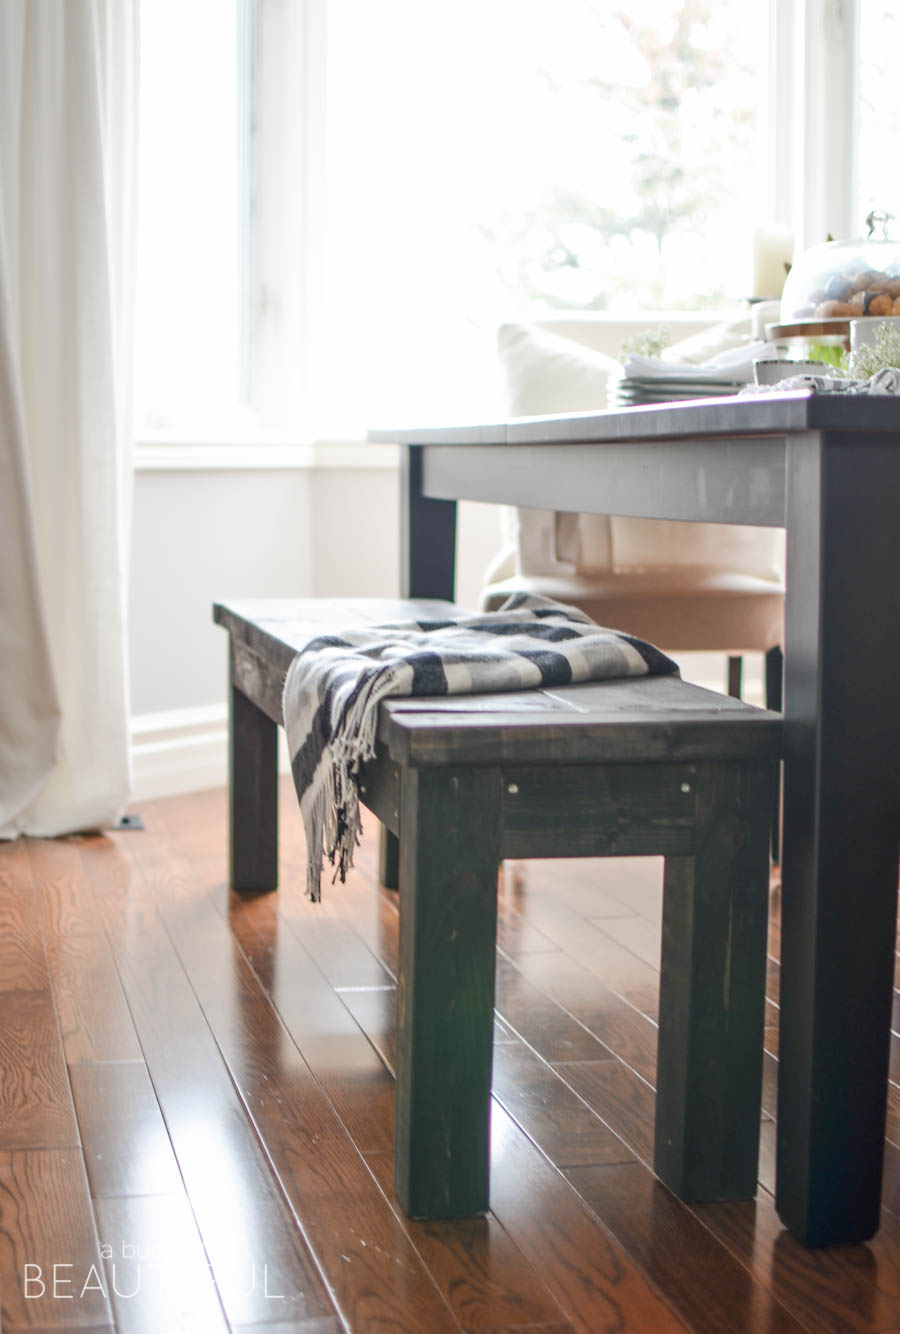 Learn how to build a rustic DIY farmhouse bench with this simple plan | A Burst of Beautiful